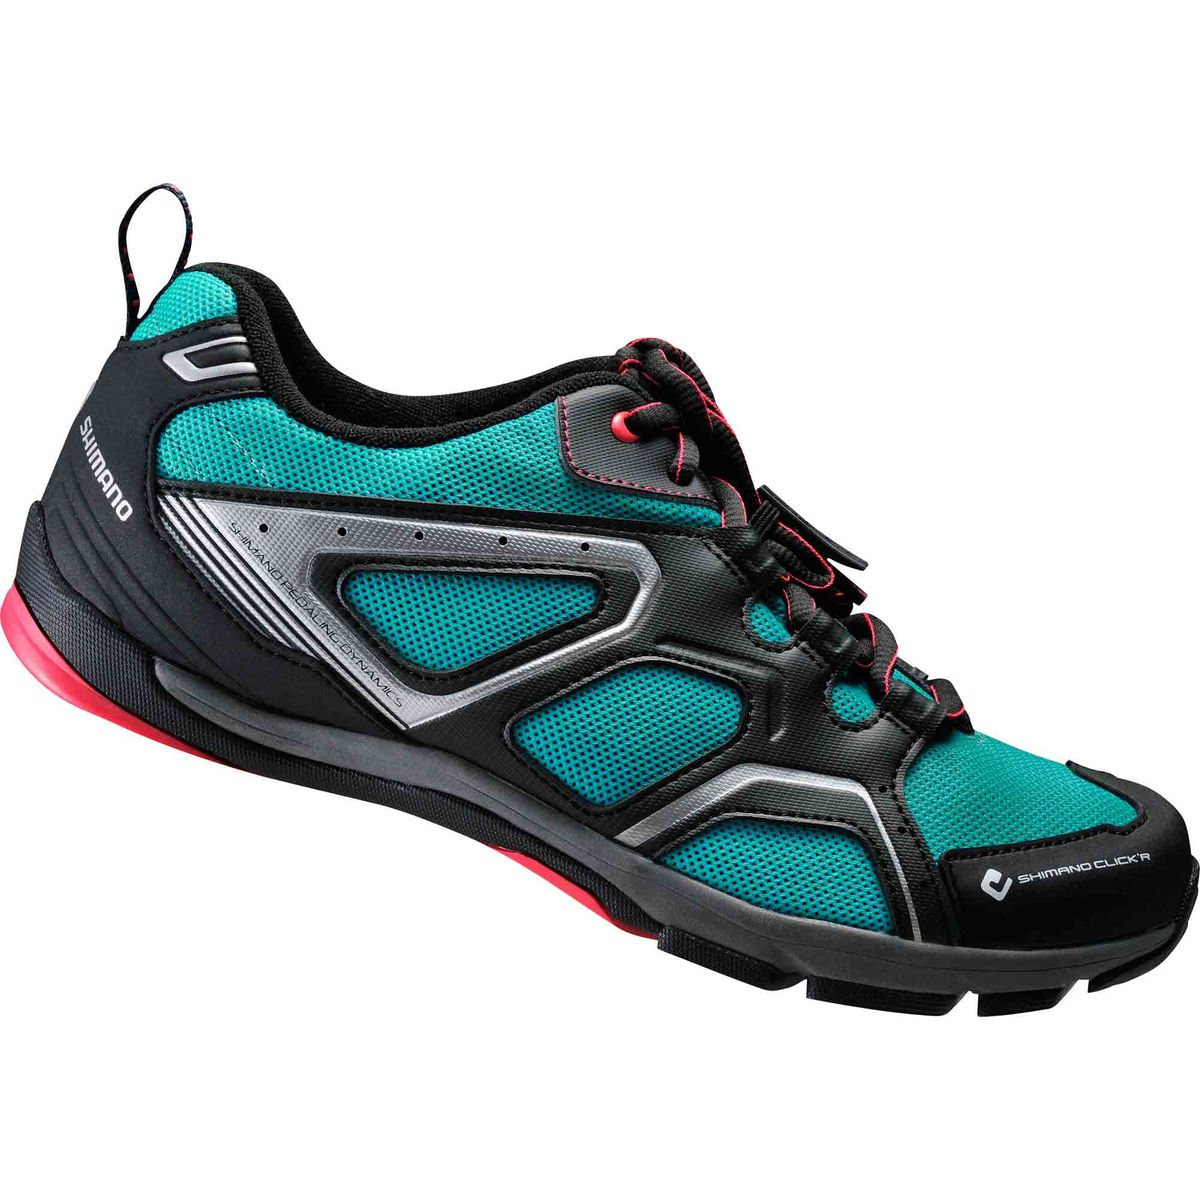 SH-CW40 Click'R women's MTB/trekking shoes